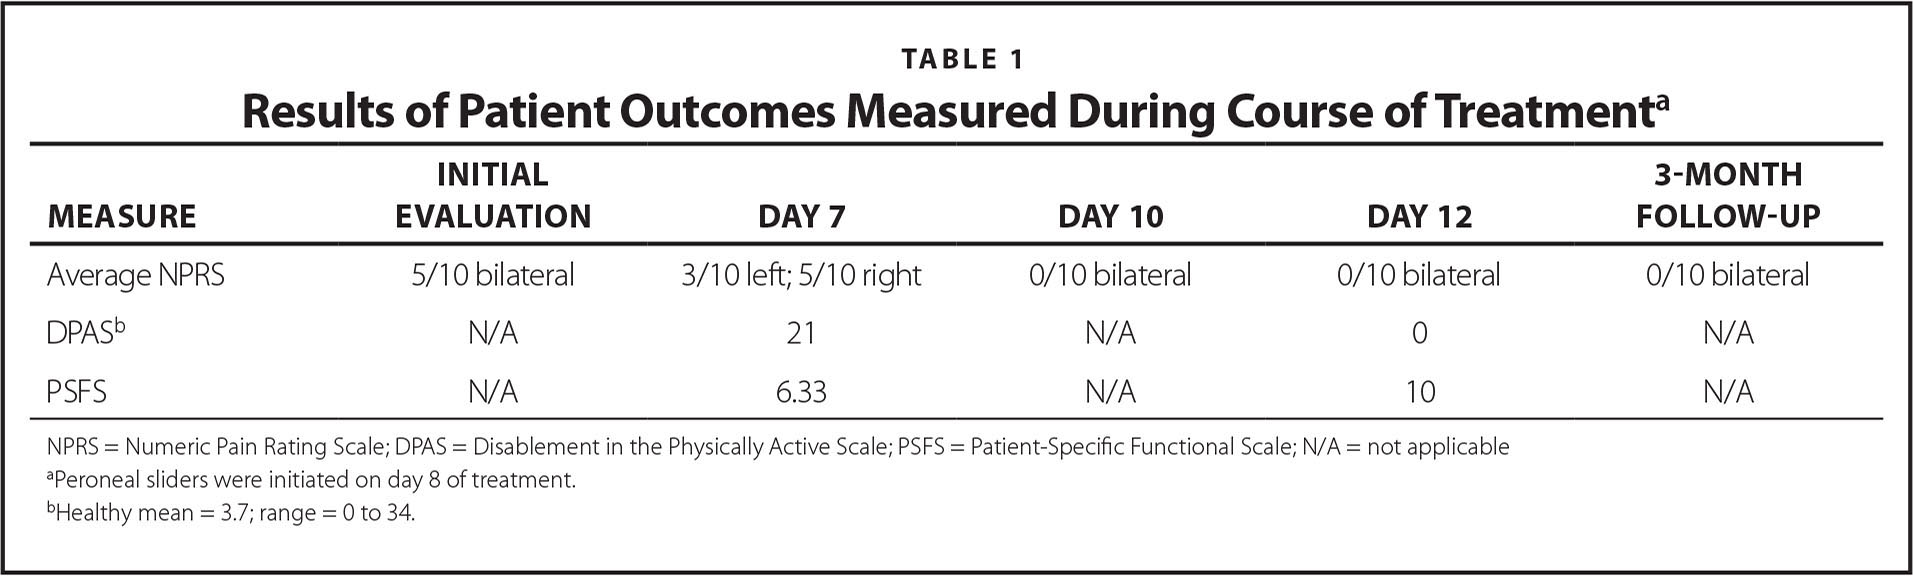 Results of Patient Outcomes Measured During Course of Treatmenta